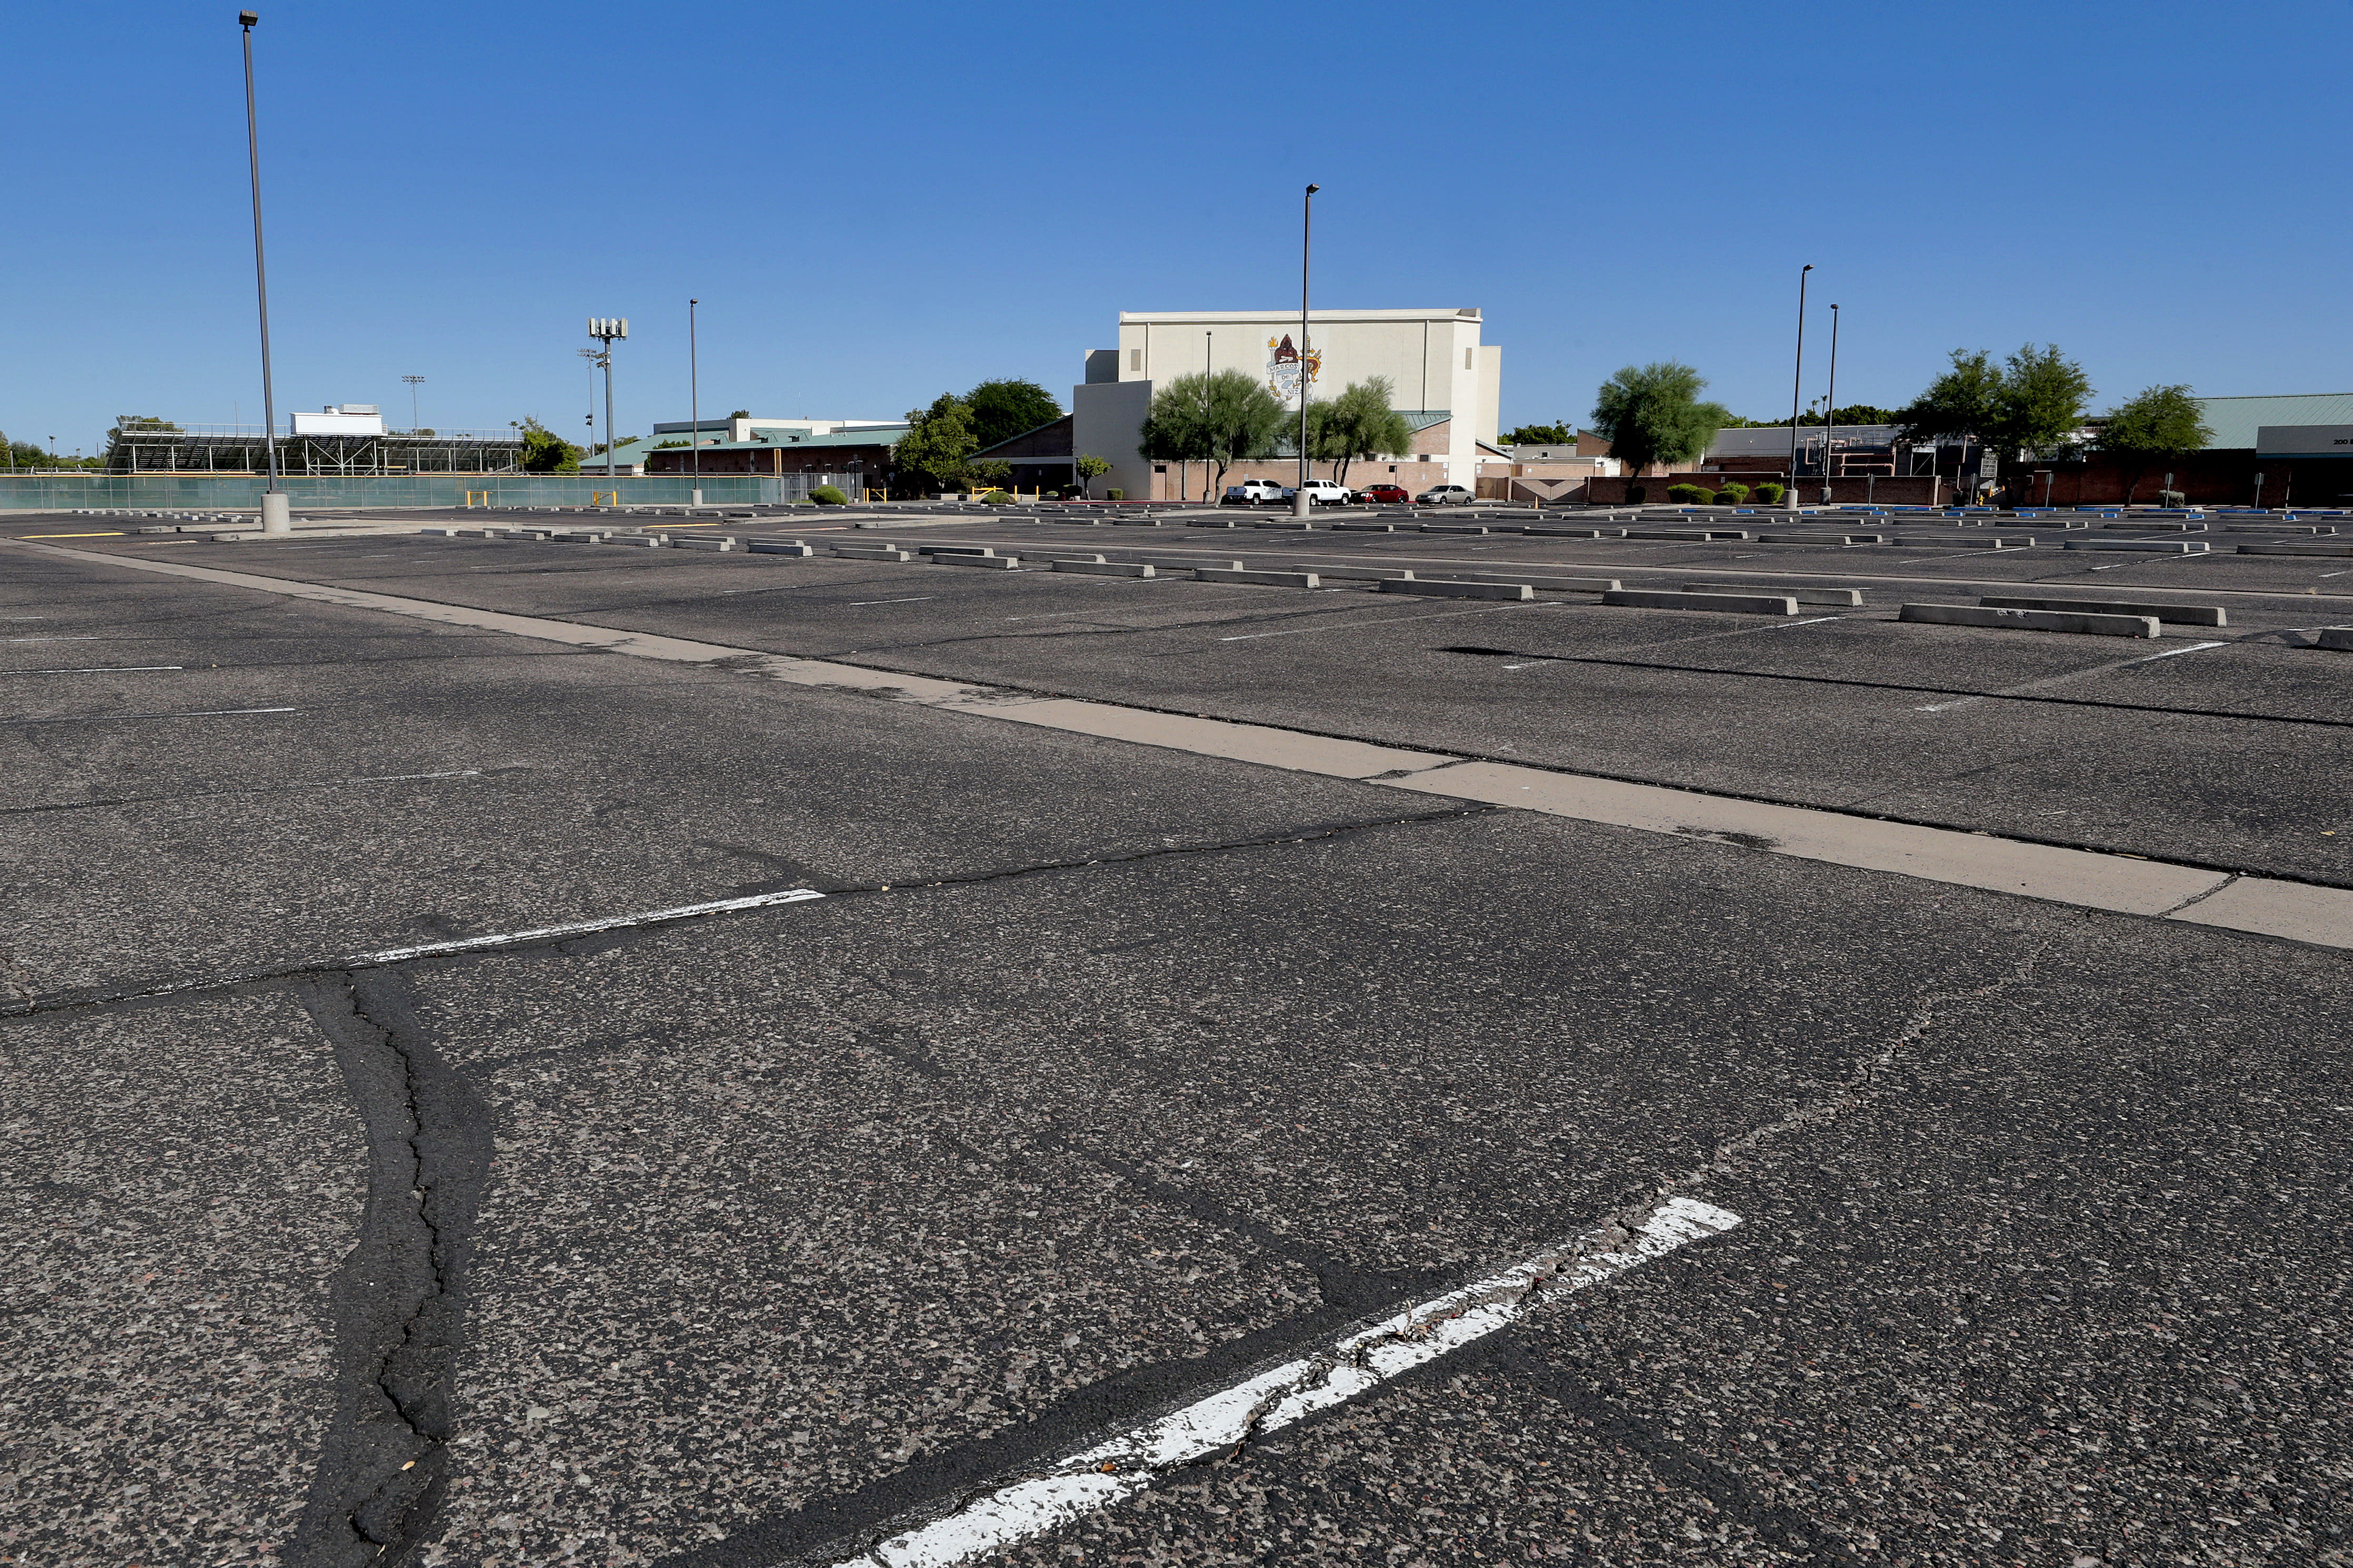 A parking lot is empty at a local high school Tuesday, June 30, 2020, in Tempe, Ariz. Schools will remain vacant two weeks longer this summer after Arizona Gov. Doug Ducey re-shut down bars, movie theaters, gyms, water parks and his delayed the start of school amid a dramatic resurgence of coronavirus cases. (AP Photo/Matt York)